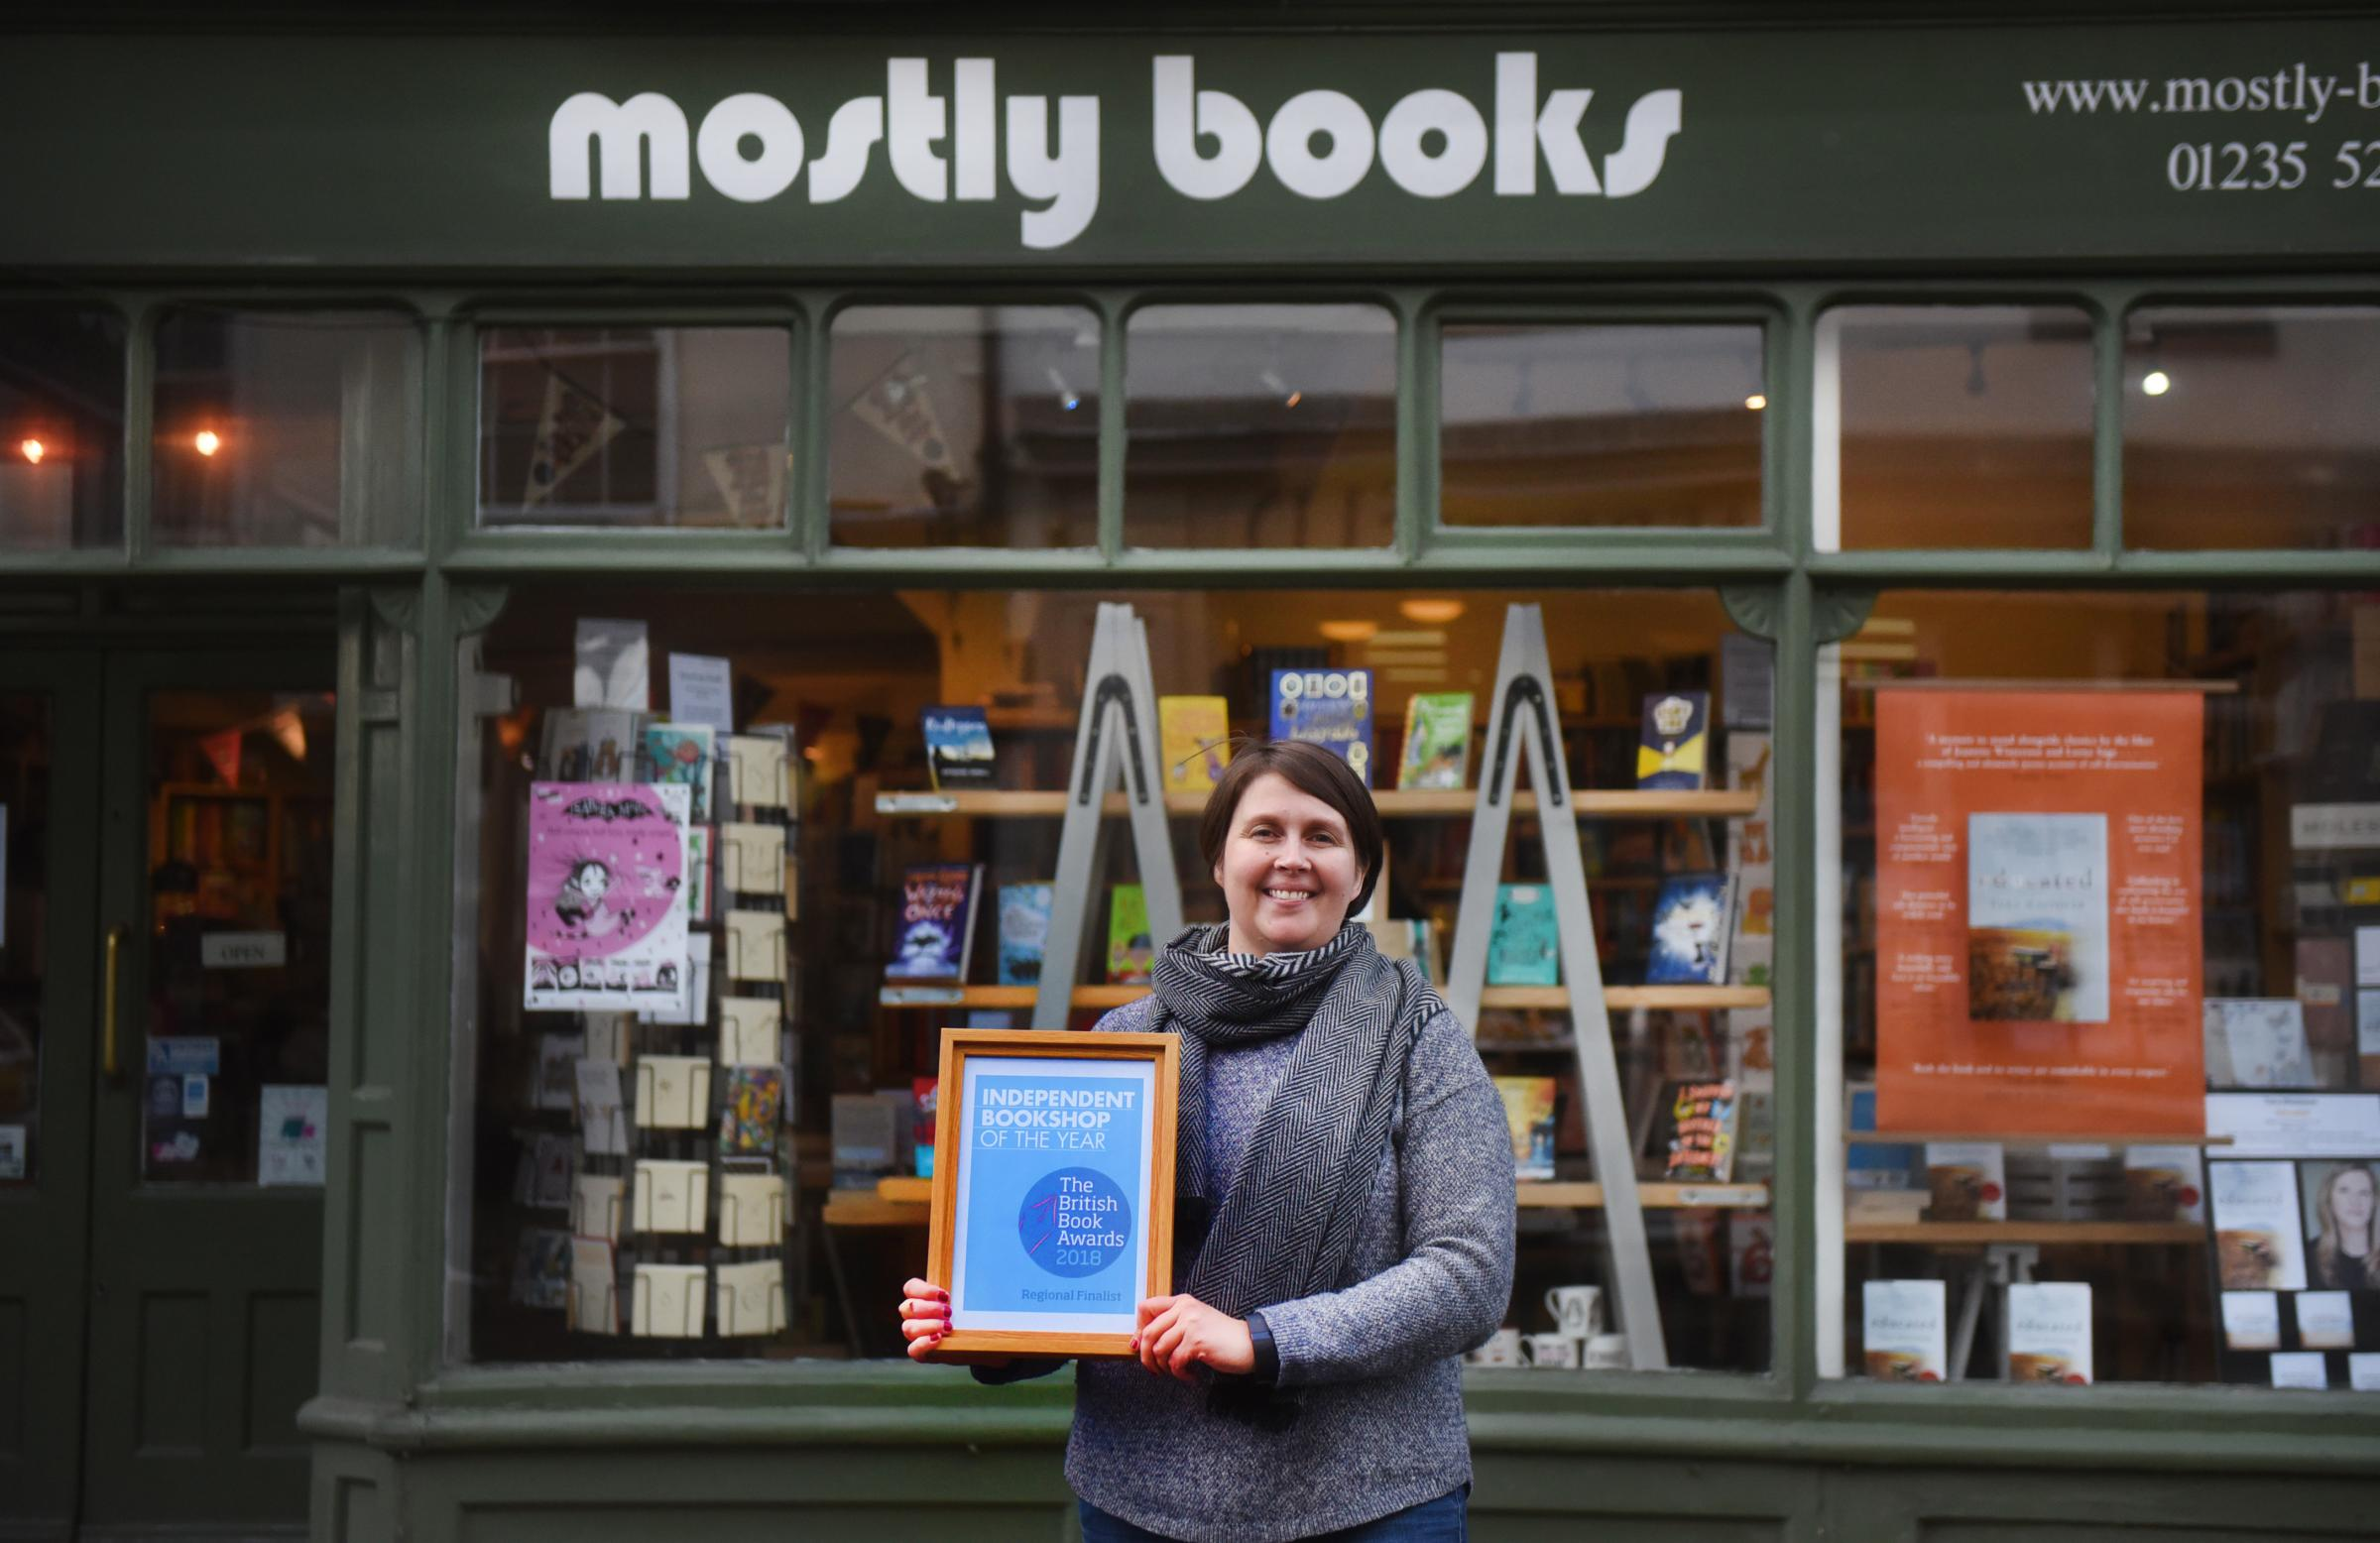 Owner Sarah Dennis at Mostly Books, Abingdon after being shortlisted last year. Picture Richard Cave.